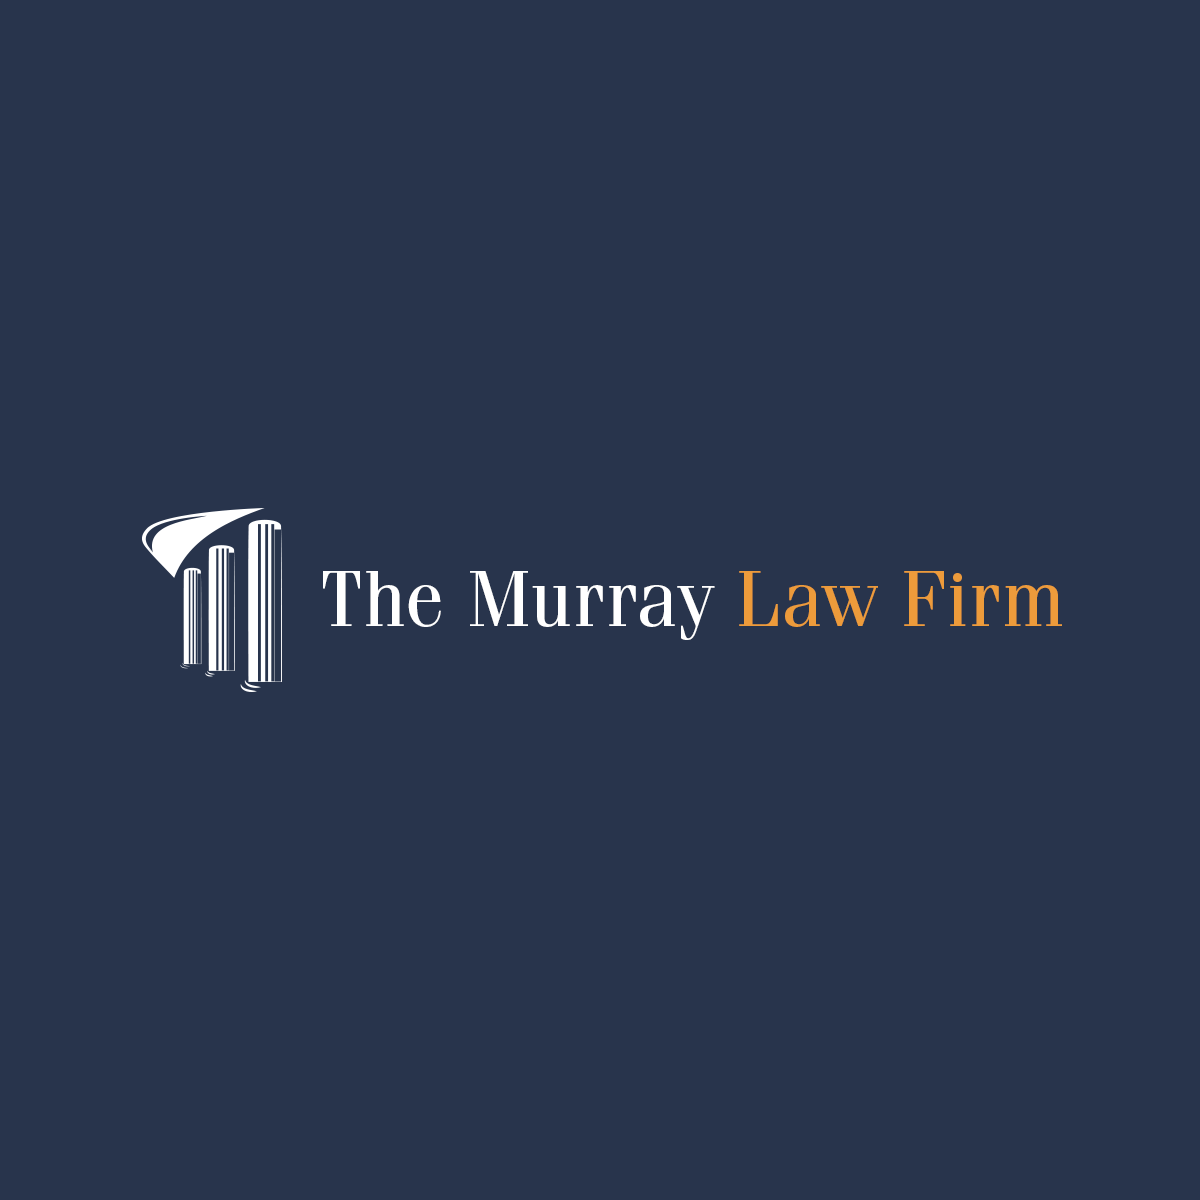 The Legal Chronicle — Published by The Legal Chronicle — The Murray